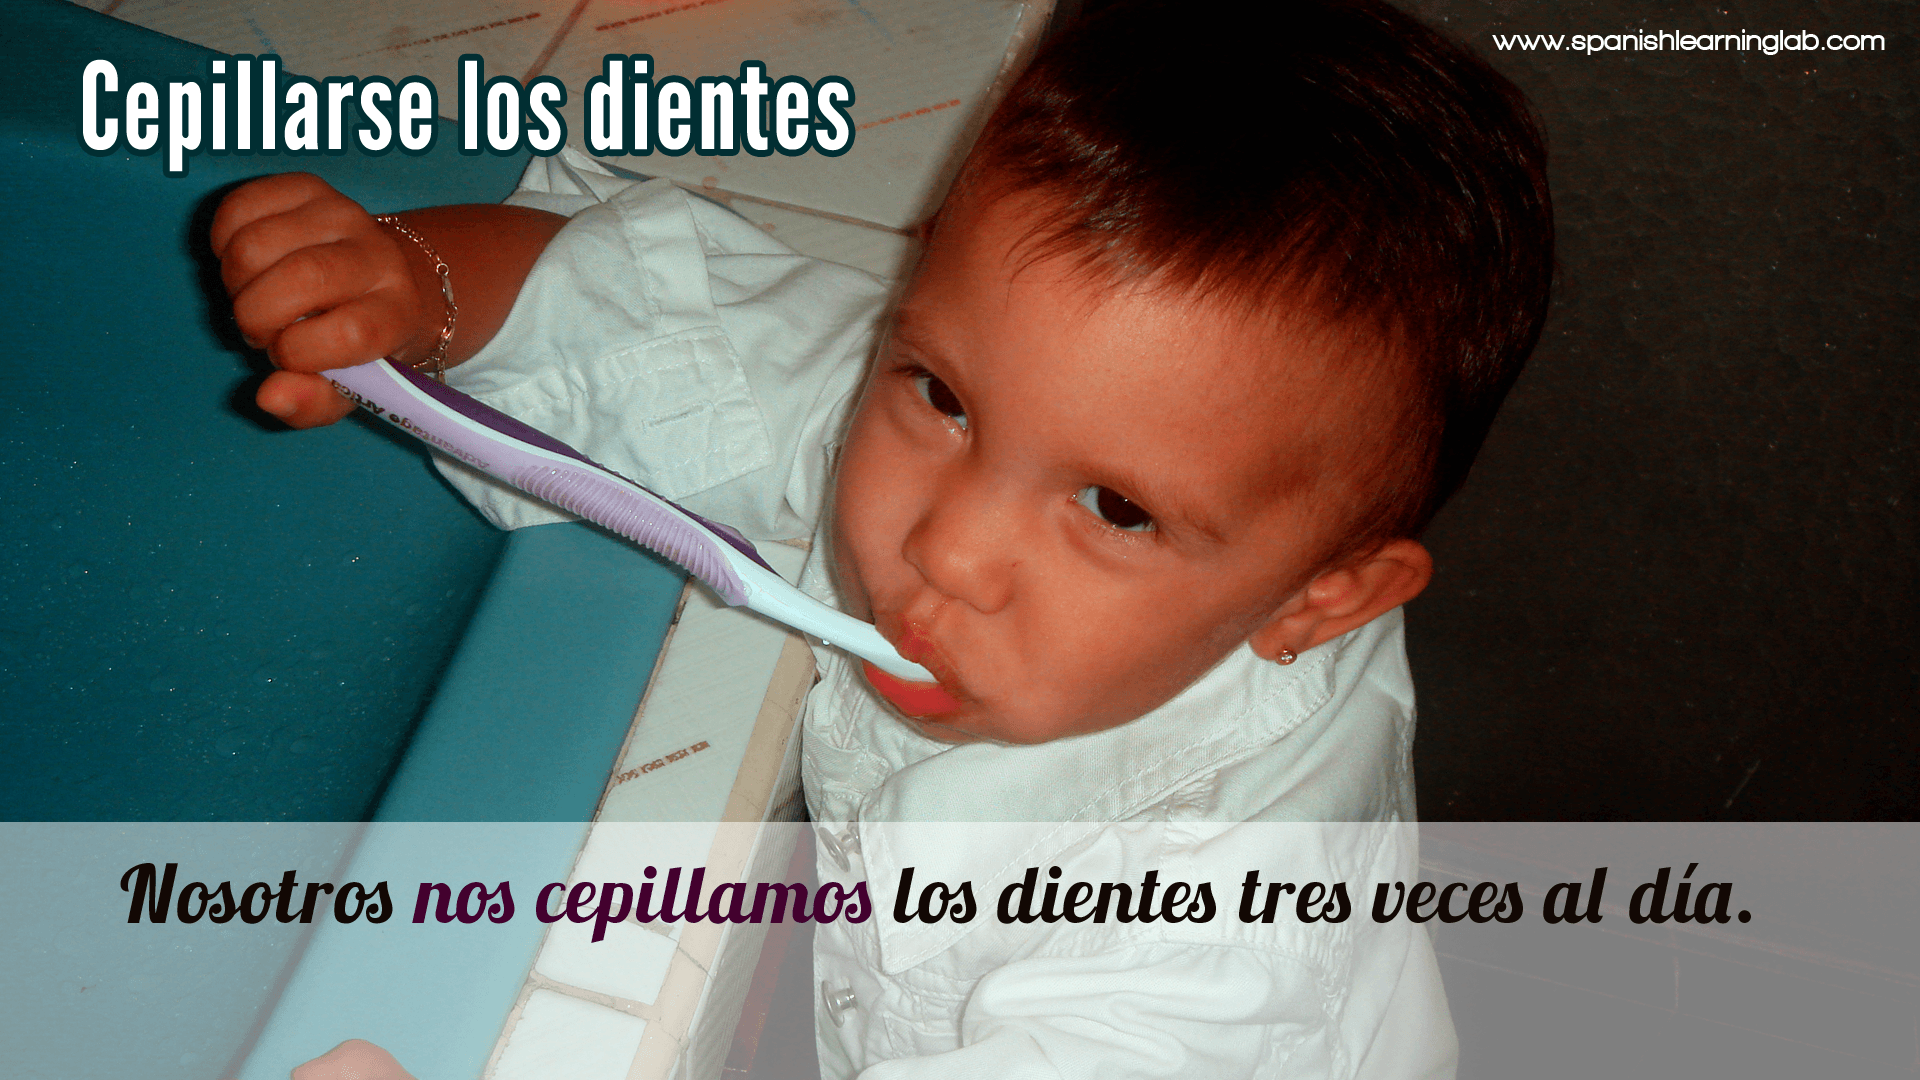 Cepillarse Losntes Is How We Say Brushing My Teeth In Spanish Cepillarse Is The Main Verb